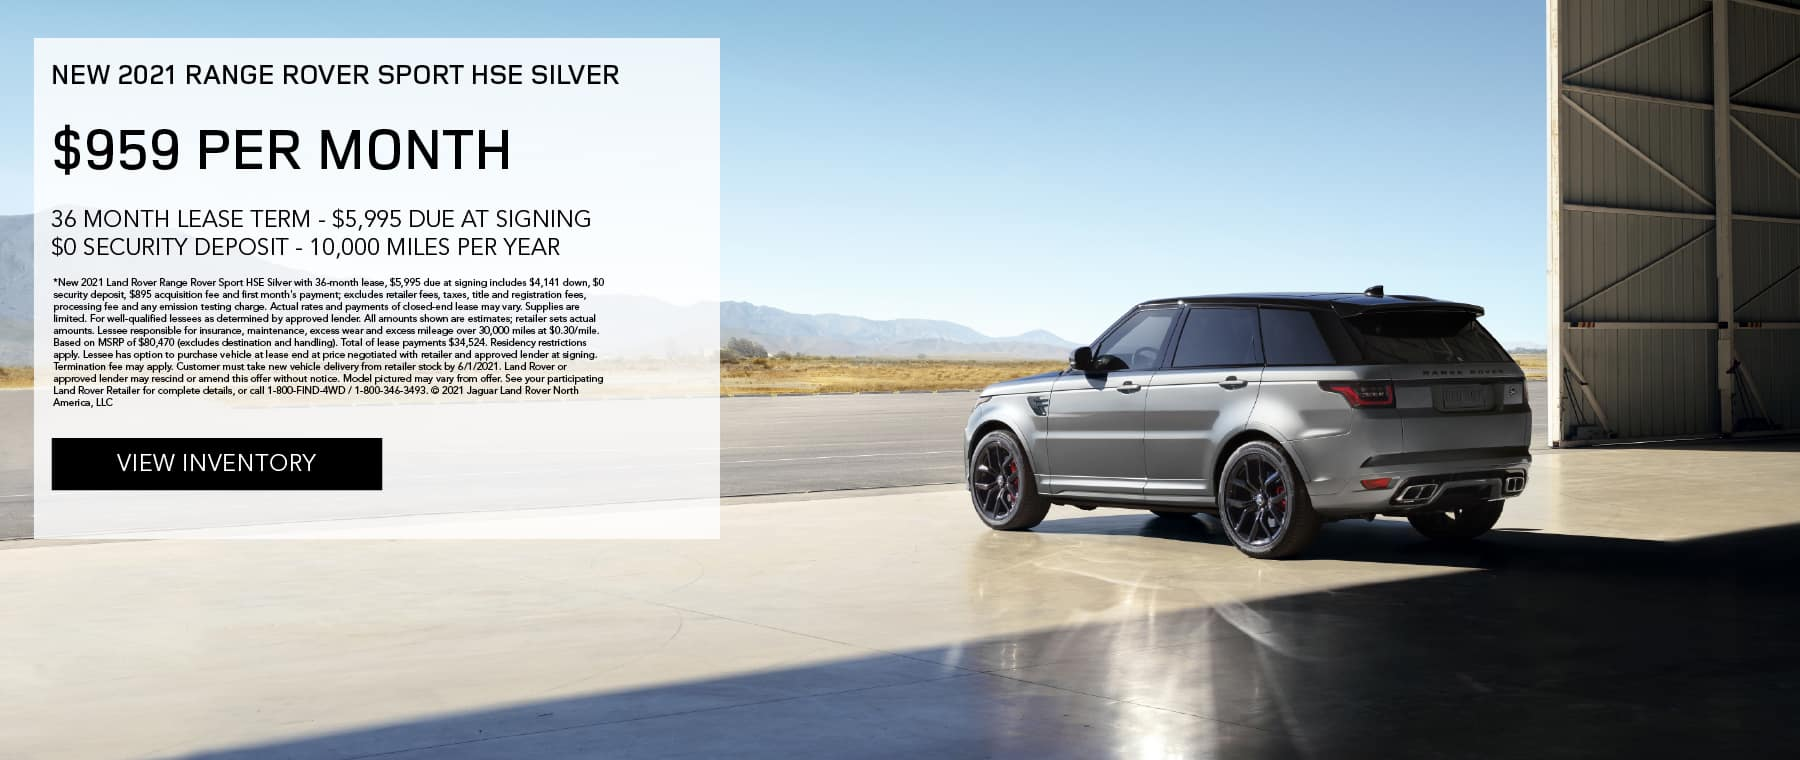 NEW 2021 RANGE ROVER SPORT HSE SILVER. $959 PER MONTH. 36 MONTH LEASE TERM. $5,995 CASH DUE AT SIGNING. $0 SECURITY DEPOSIT. 10,000 MILES PER YEAR. EXCLUDES RETAILER FEES, TAXES, TITLE AND REGISTRATION FEES, PROCESSING FEE AND ANY EMISSION TESTING CHARGE. ENDS 6/1/2021. VIEW INVENTORY. SILVER RANGE ROVER SPORT PARKED IN AIRPLANE HANGER.